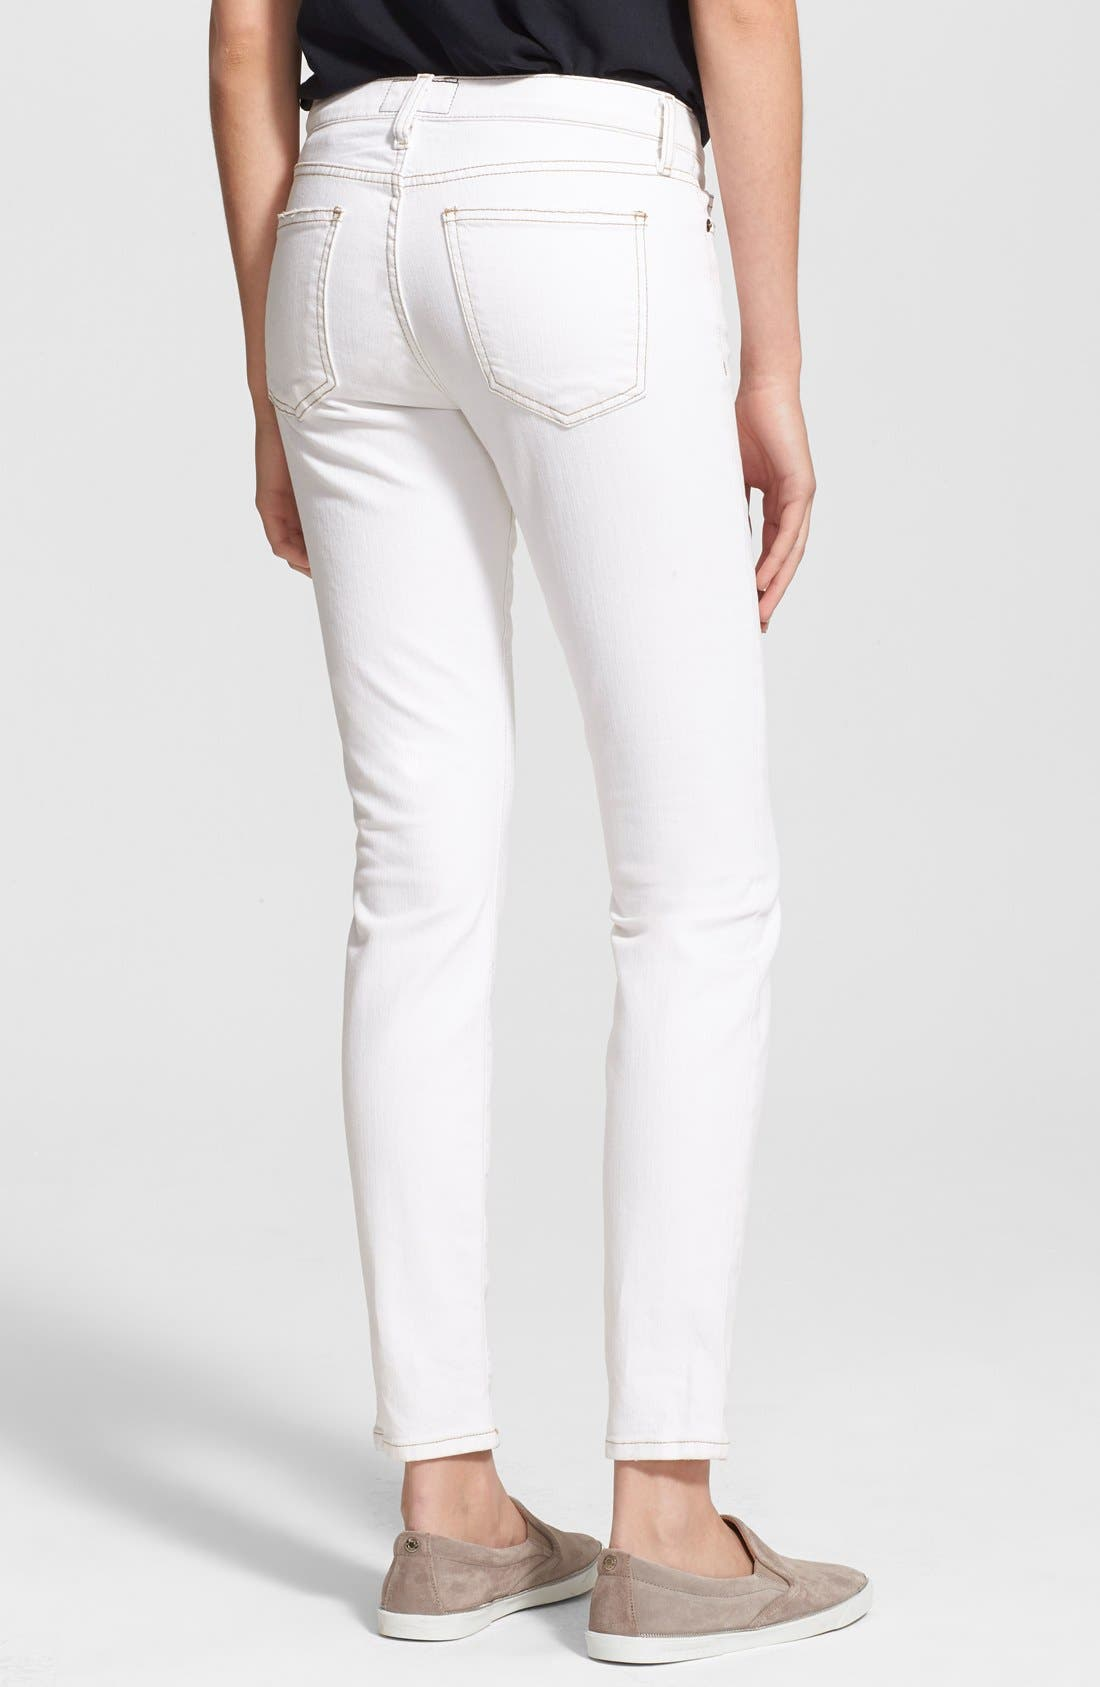 CURRENT/ELLIOTT,                             'The Ankle Skinny' Print Stretch Jeans,                             Alternate thumbnail 3, color,                             116